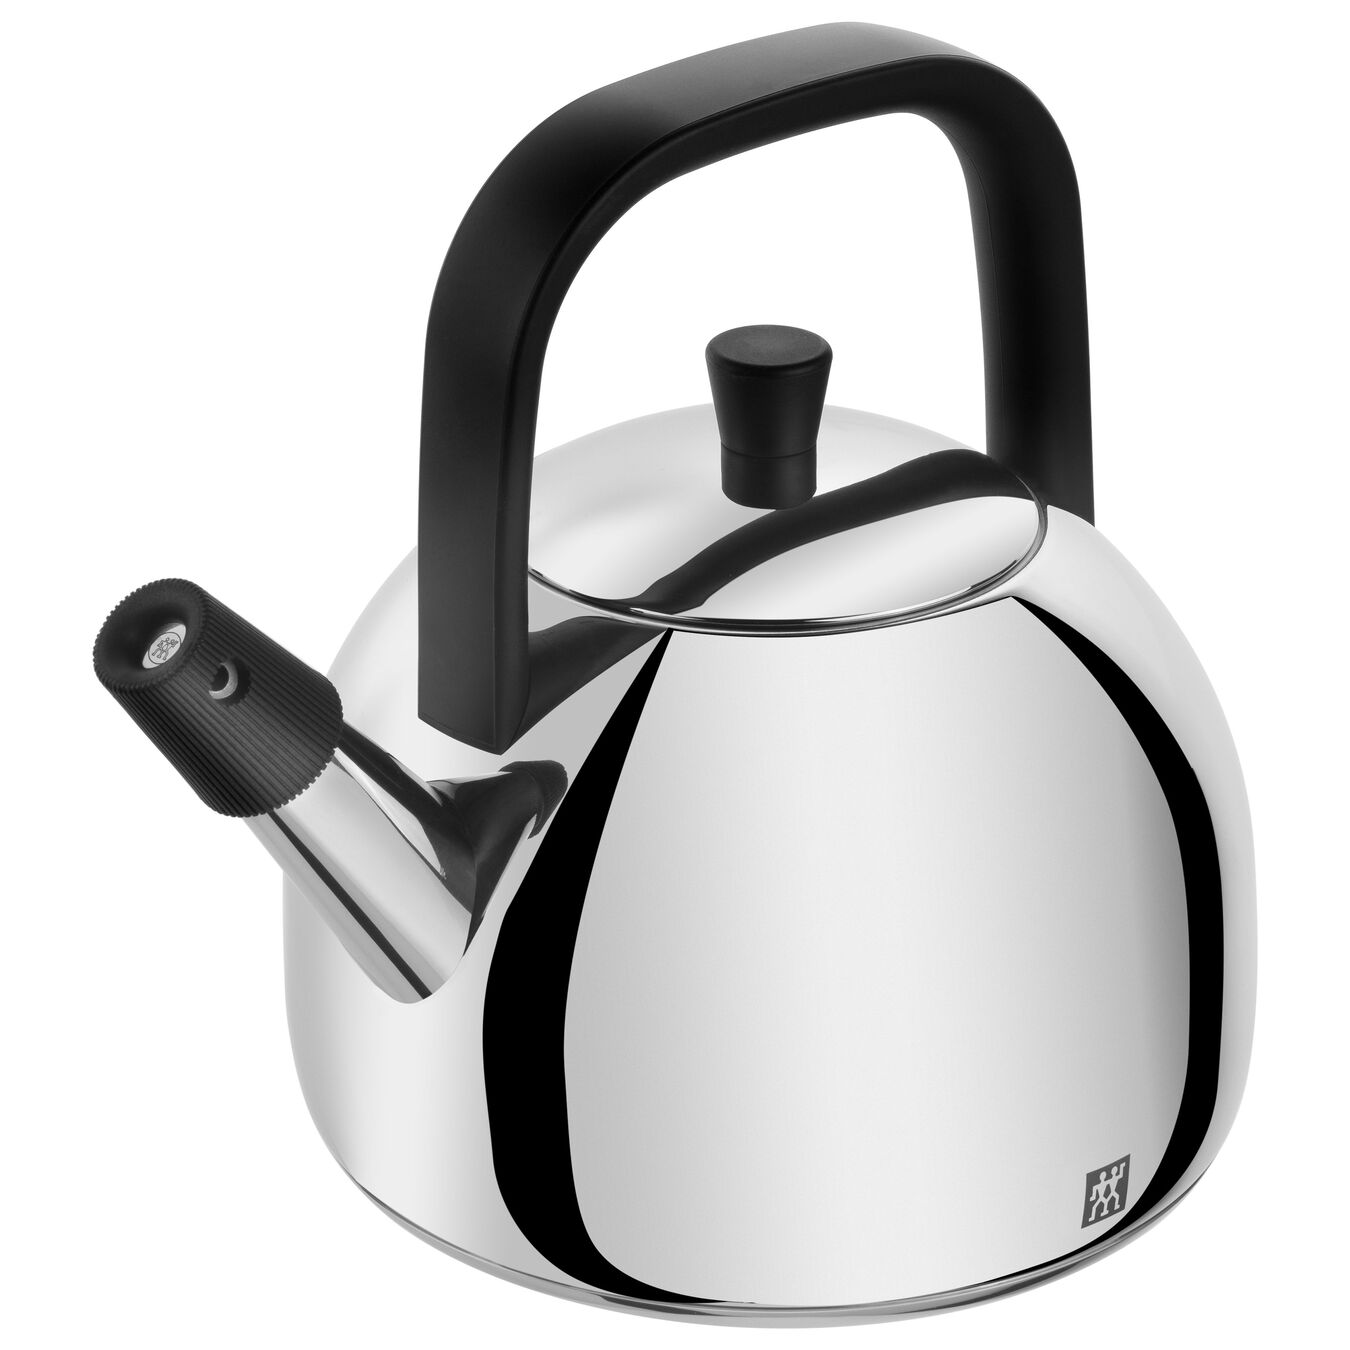 1.5 l 18/10 Stainless Steel stainless steel kettle ,,large 1